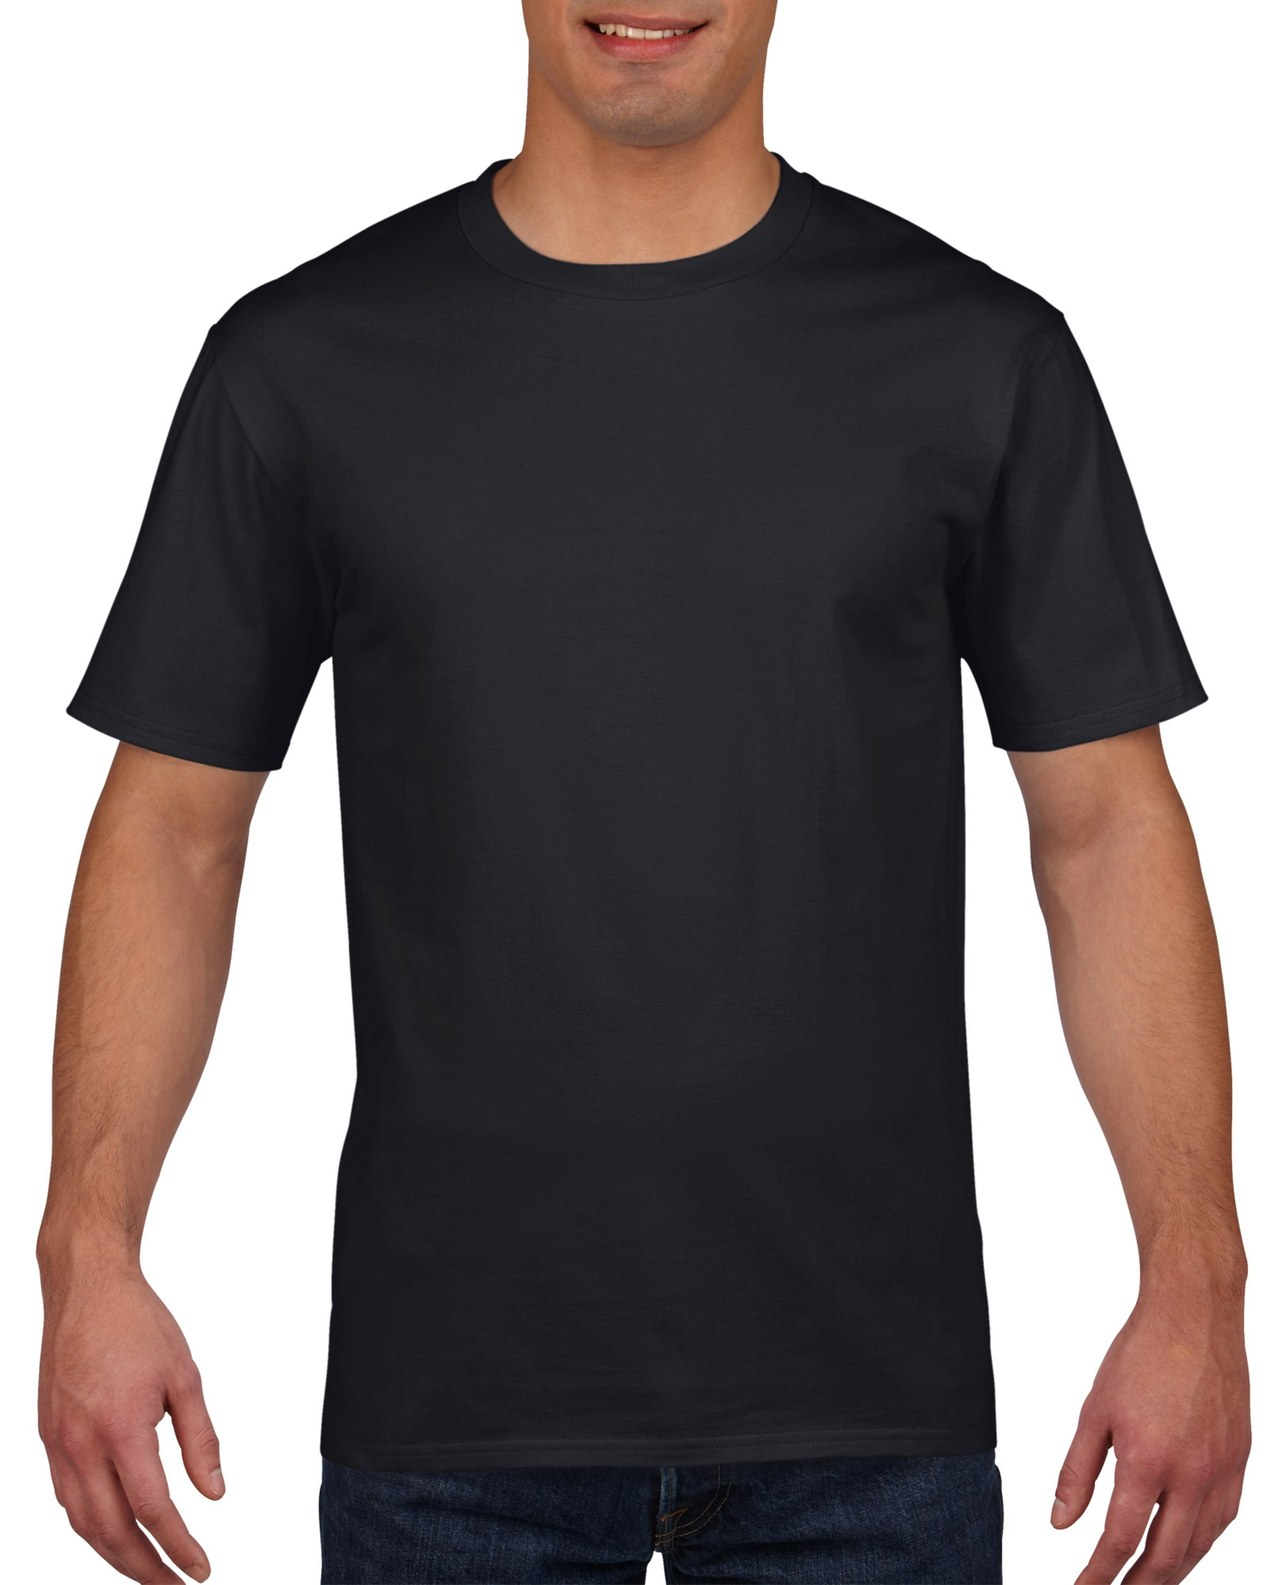 Gildan Premium Cotton Tee 4100 - Black